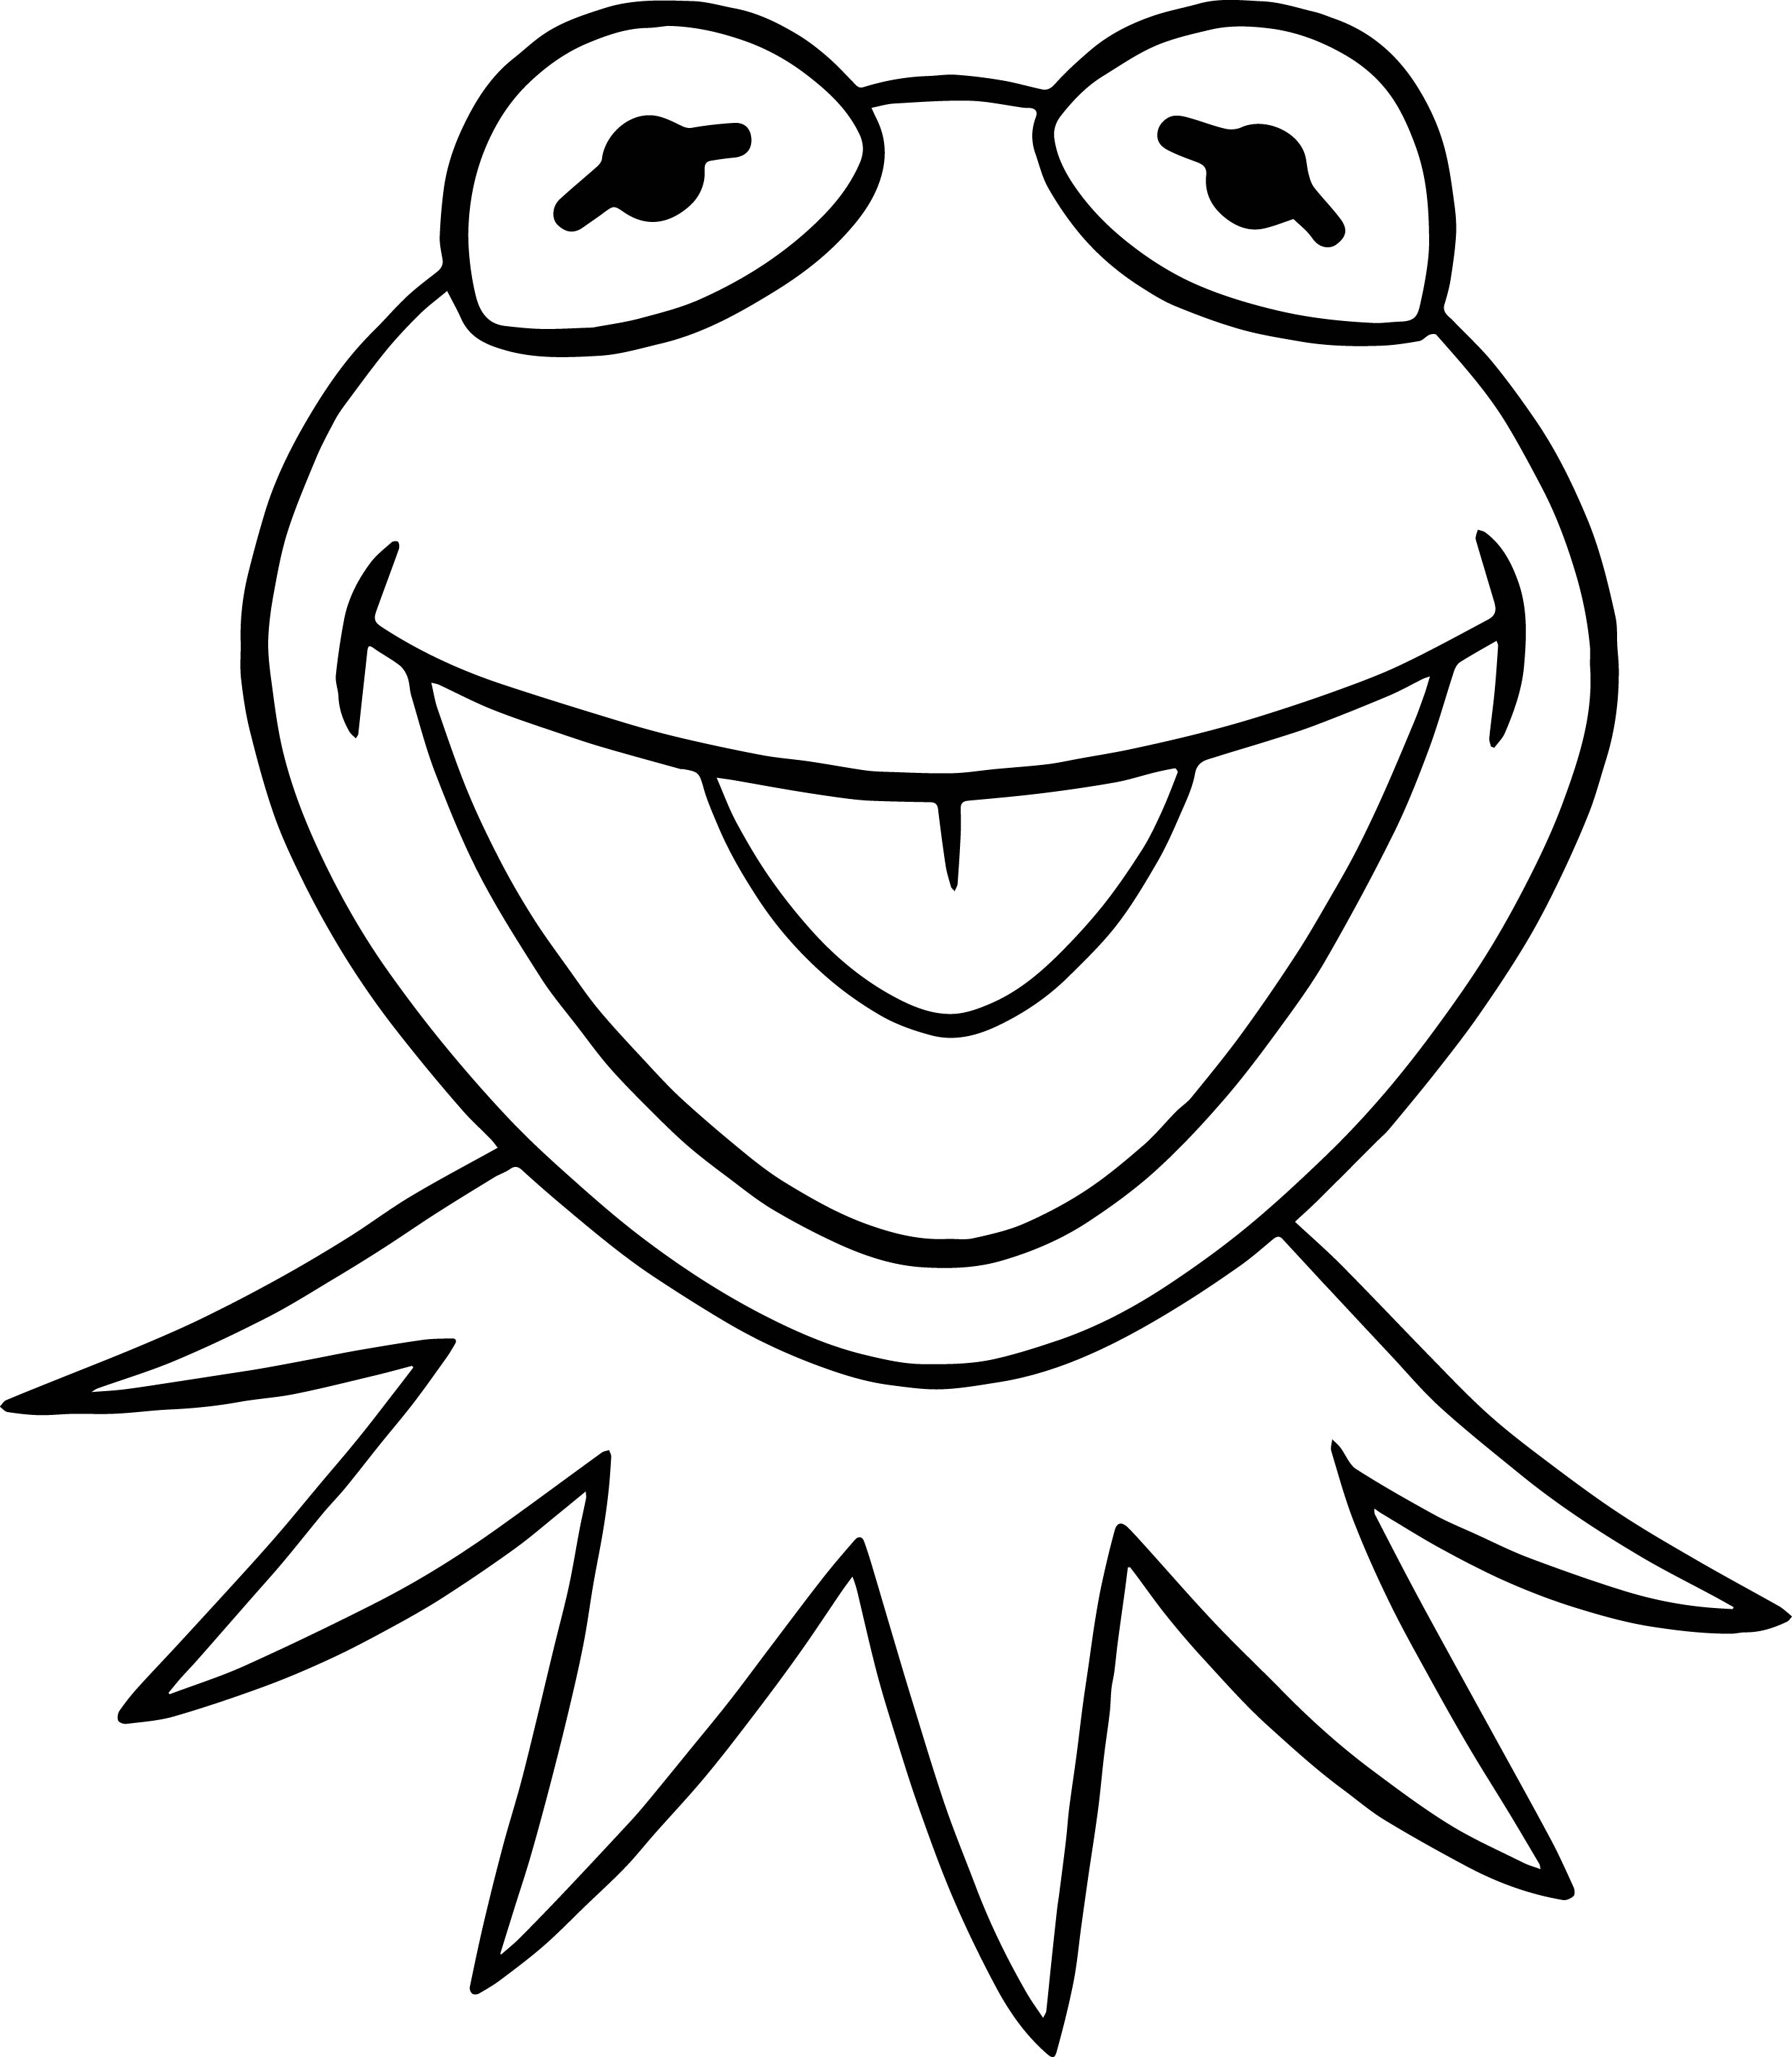 crmit coloring pages - photo#8